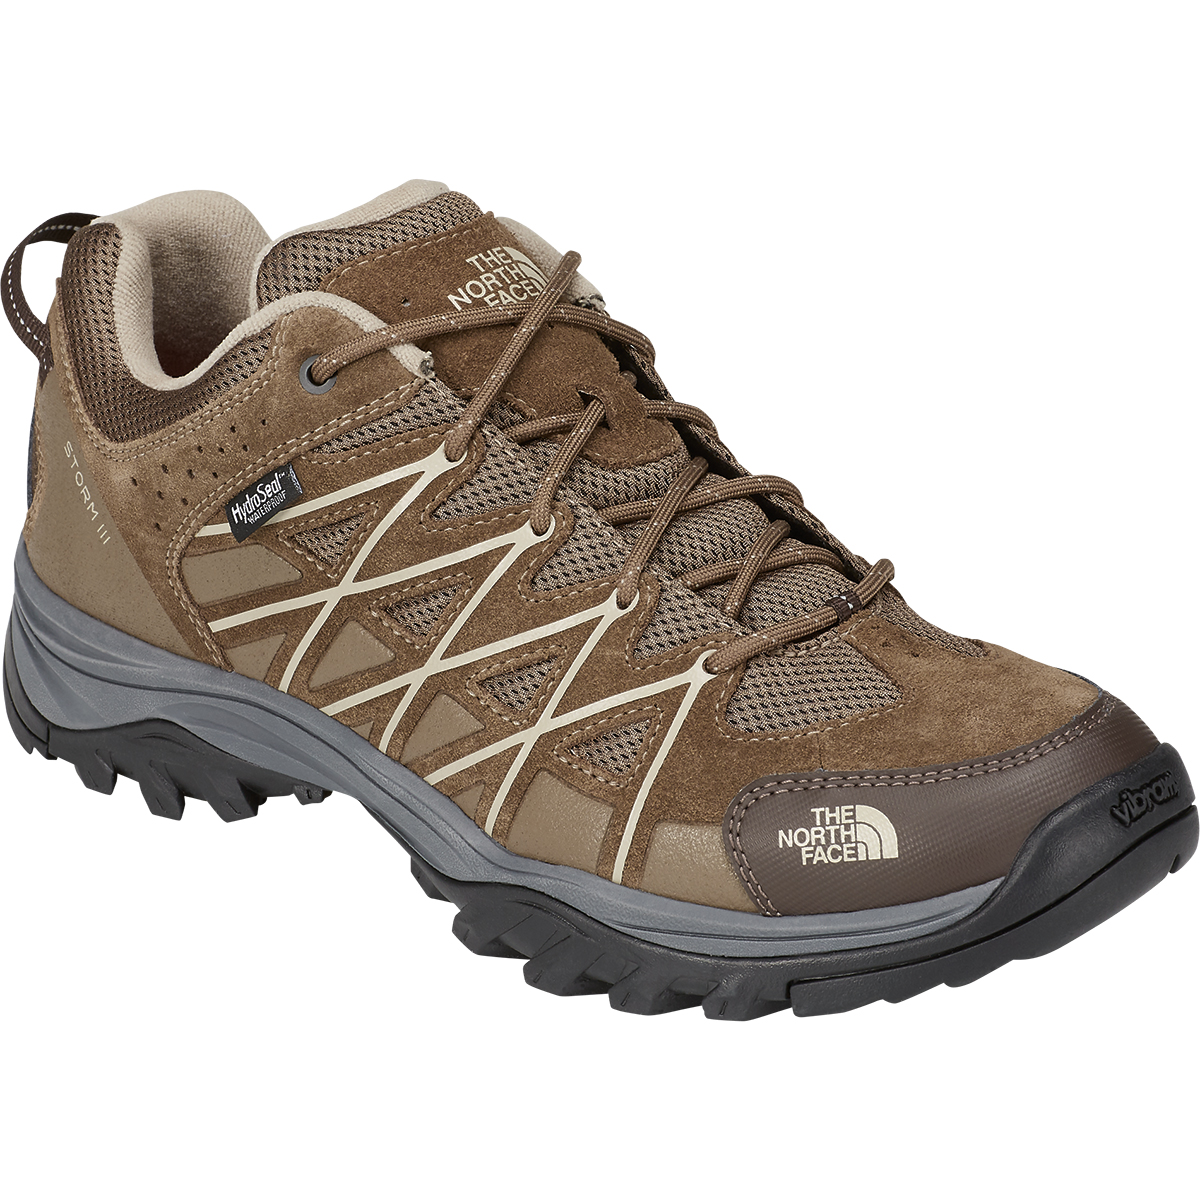 The North Face Men's Storm 3 Low Waterproof Hiking Boots - Brown, 12